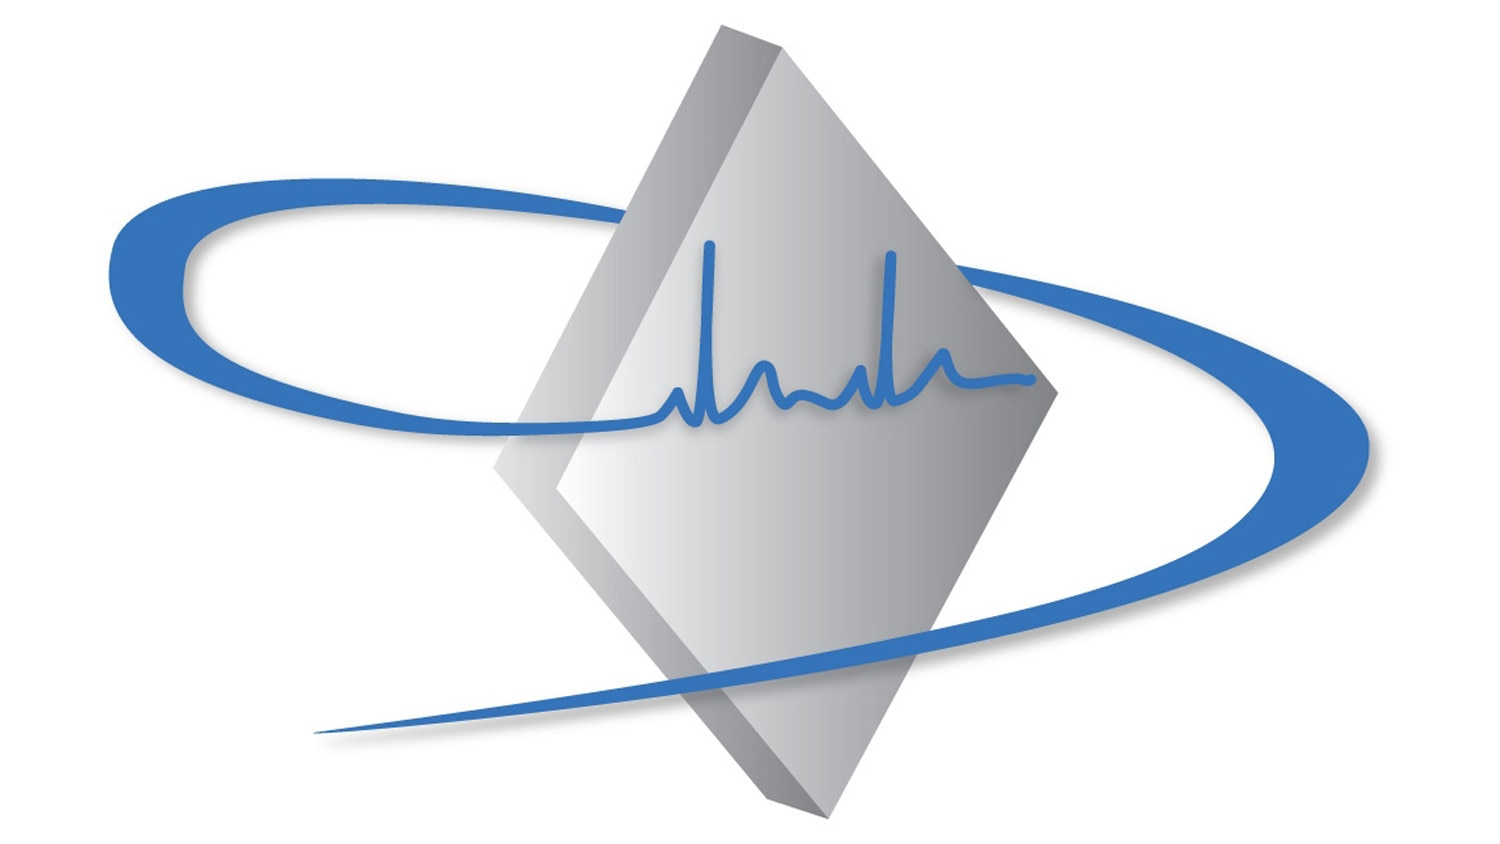 Diagnostic ECG marquette analysis program logo.